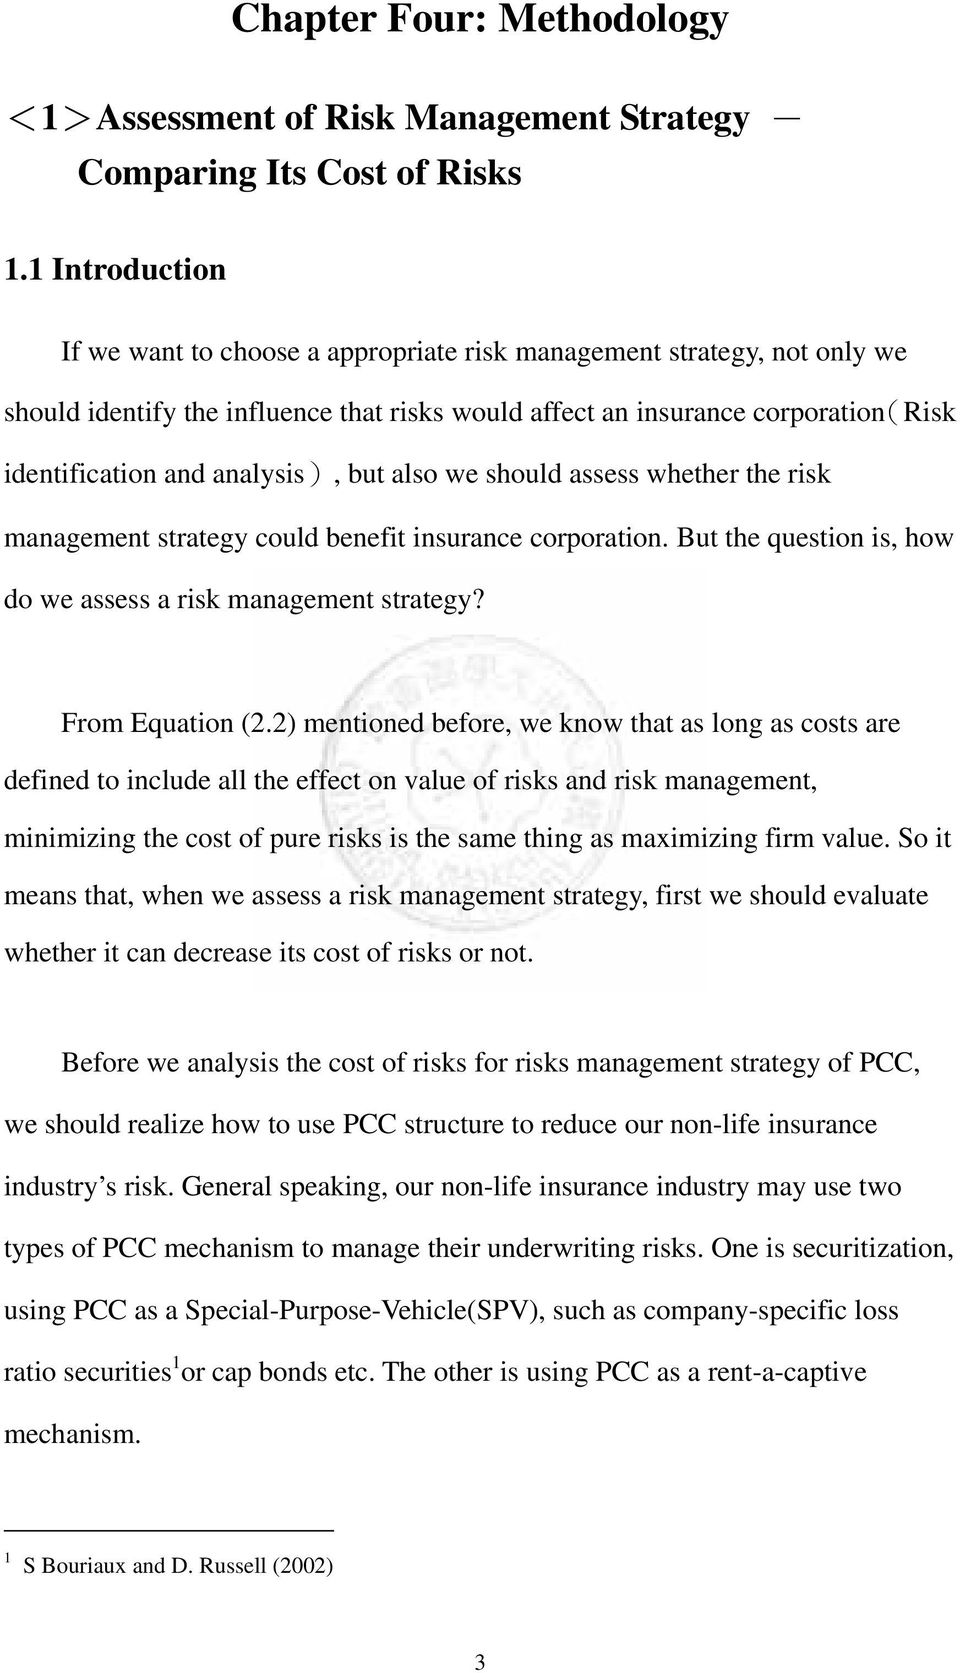 should assess wheher he risk managemen sraegy could benefi insurance corporaion. Bu he quesion is, how do we assess a risk managemen sraegy? From Equaion (2.